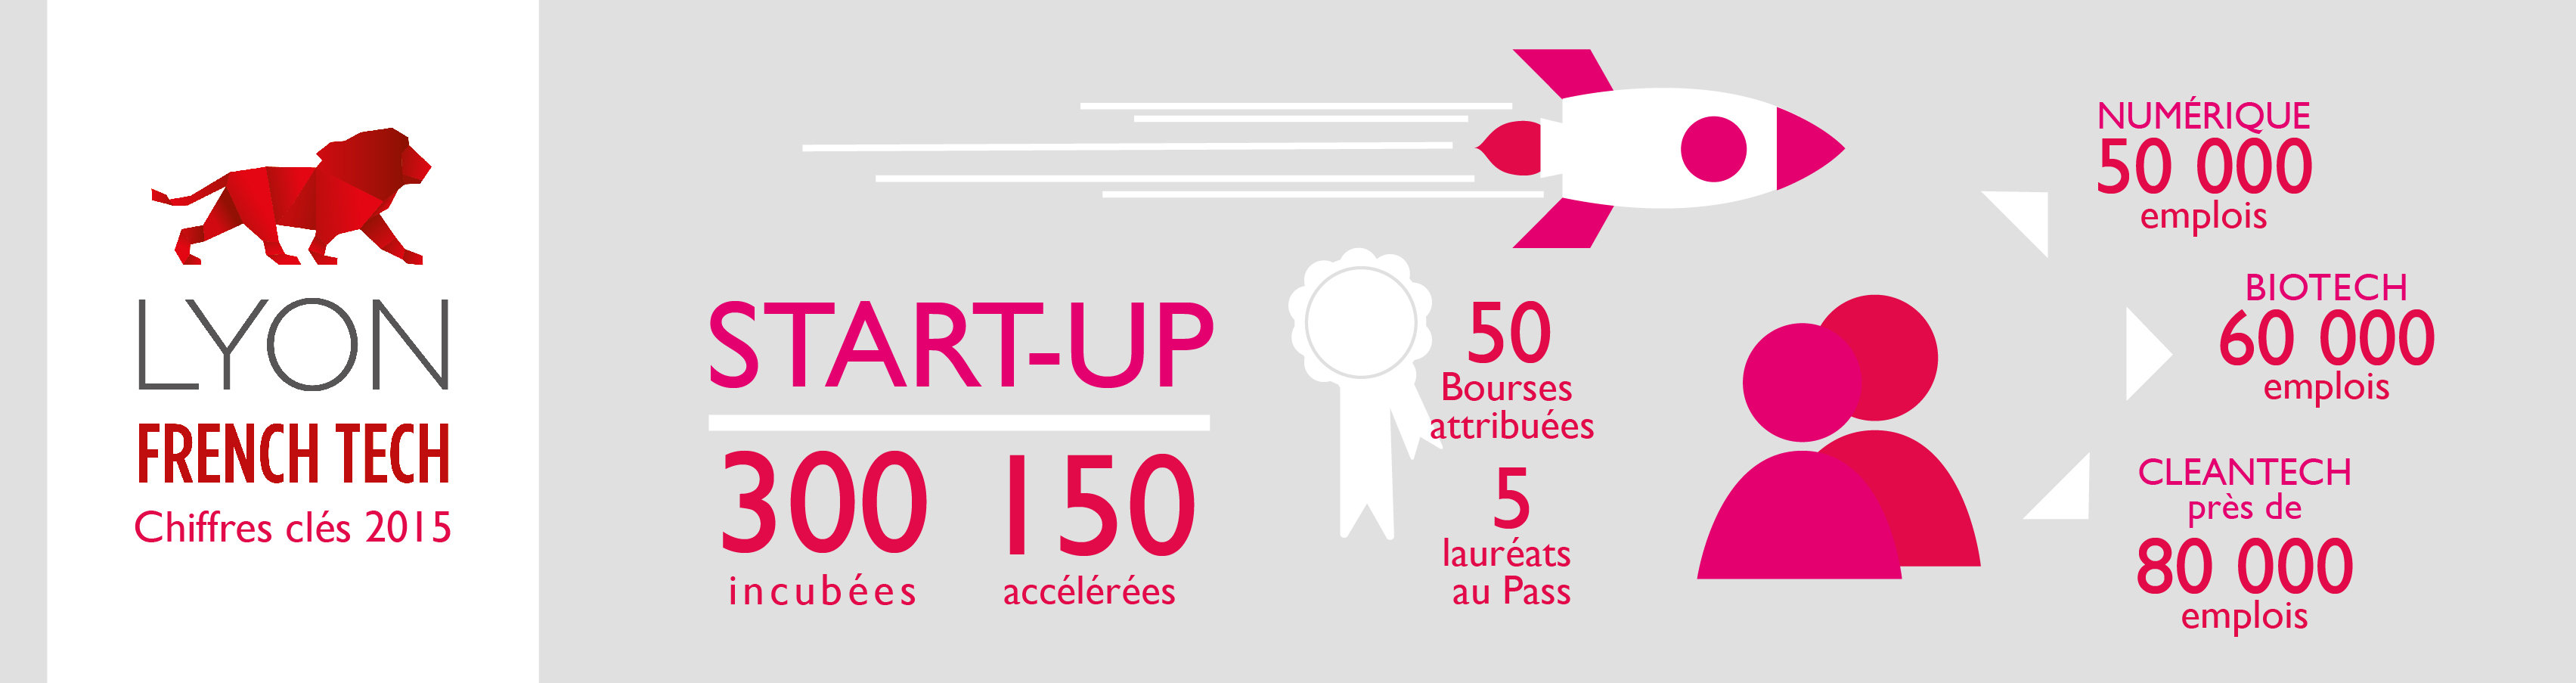 FrenchTech_infographie-02-01